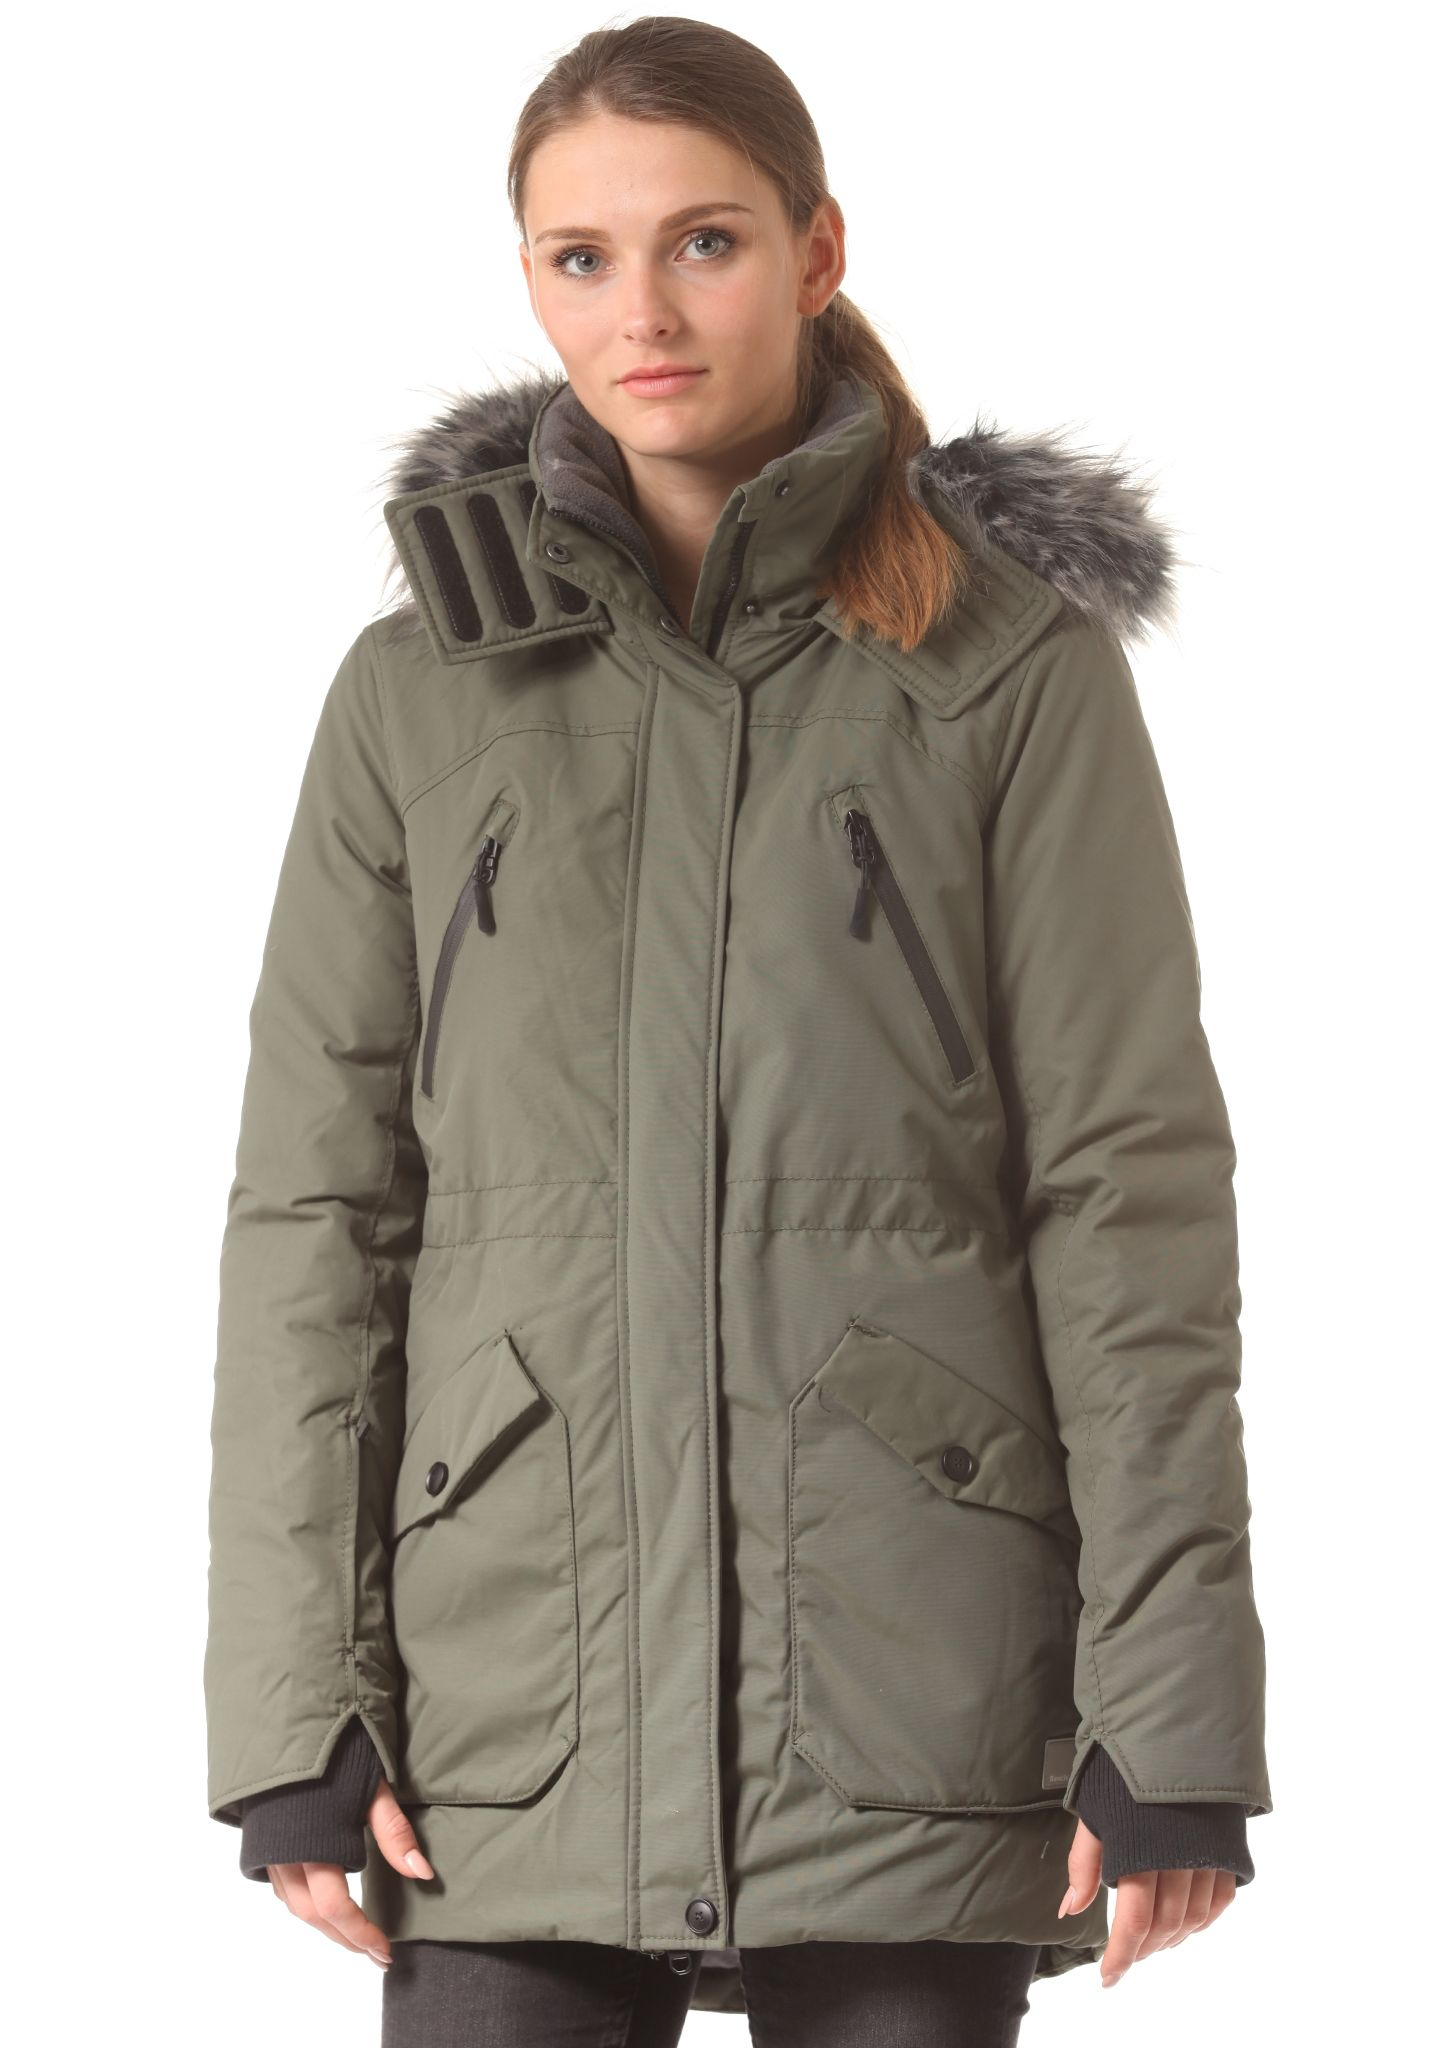 Bench winterjacke damen grun